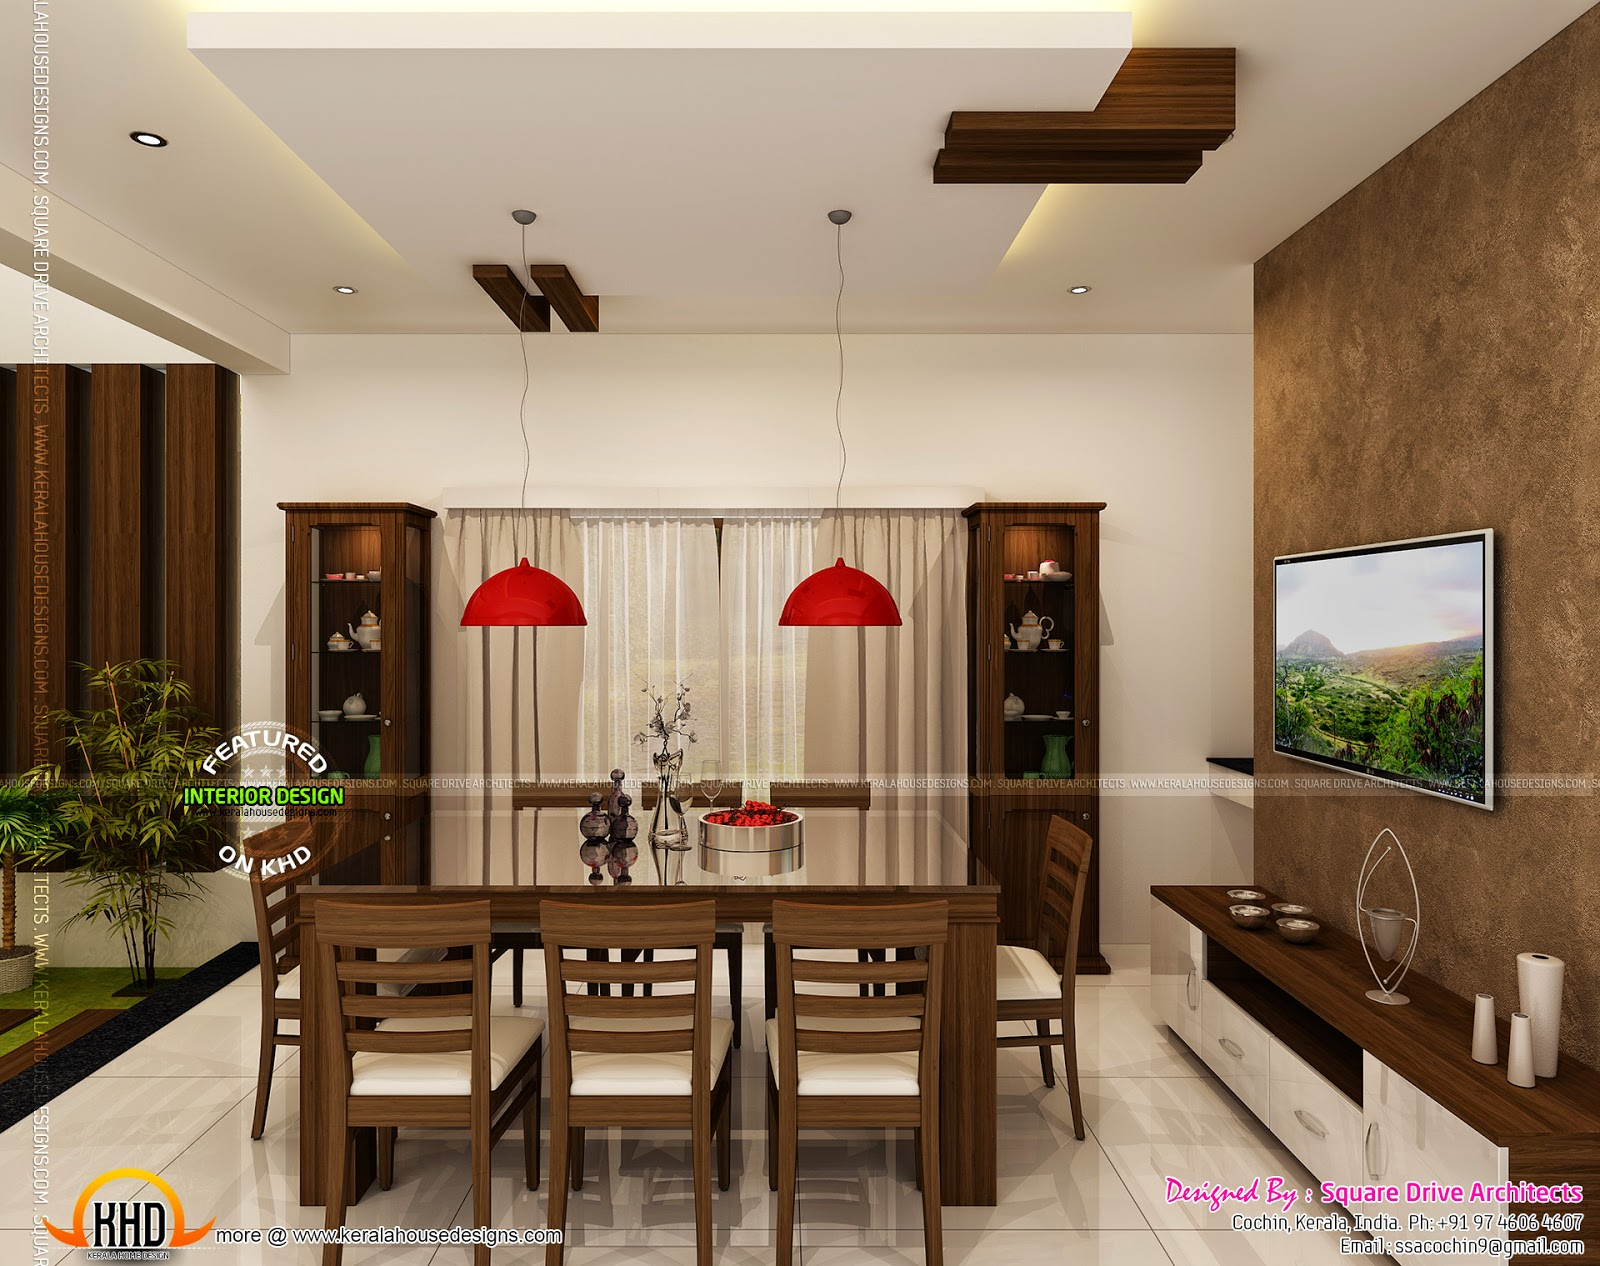 Home interiors designs kerala home design and floor plans for Kerala home interior design ideas